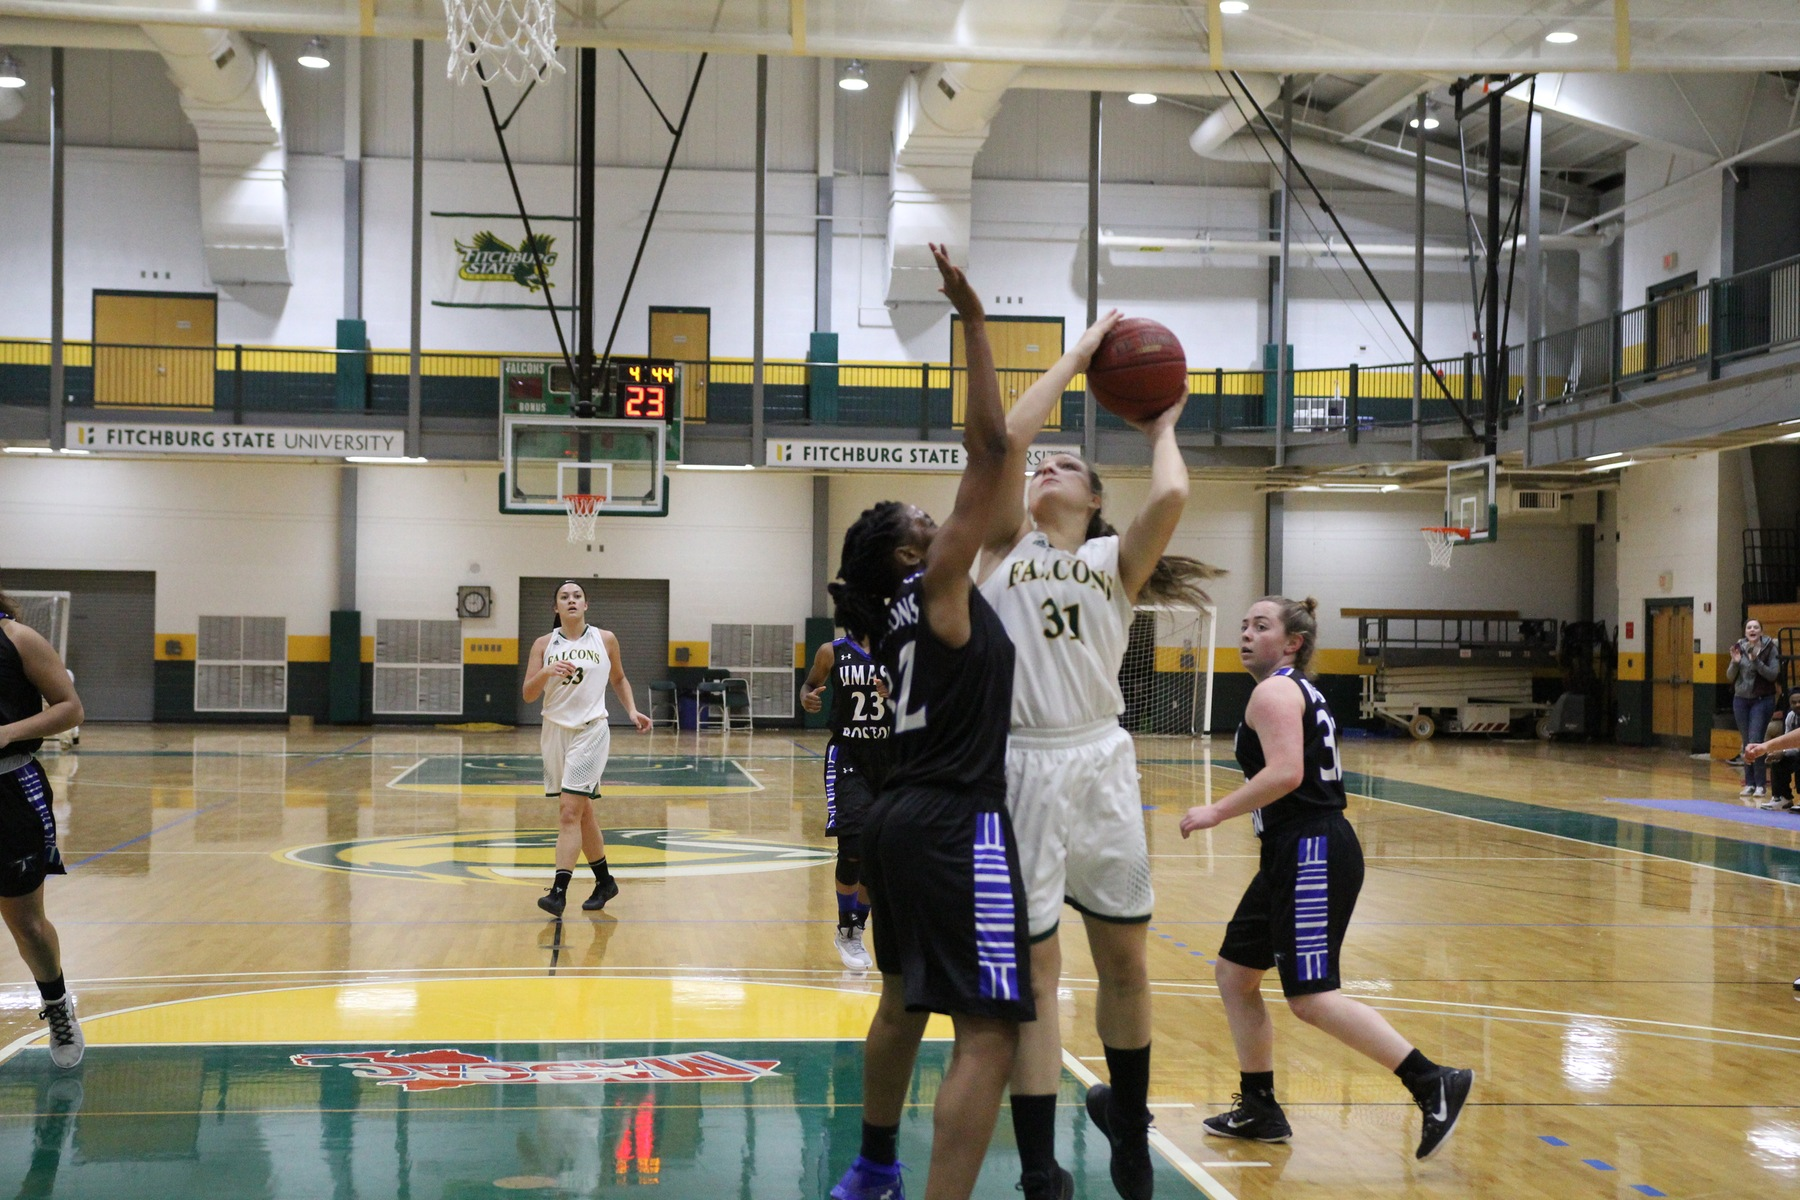 Fitchburg State Upended By MCLA, 62-38